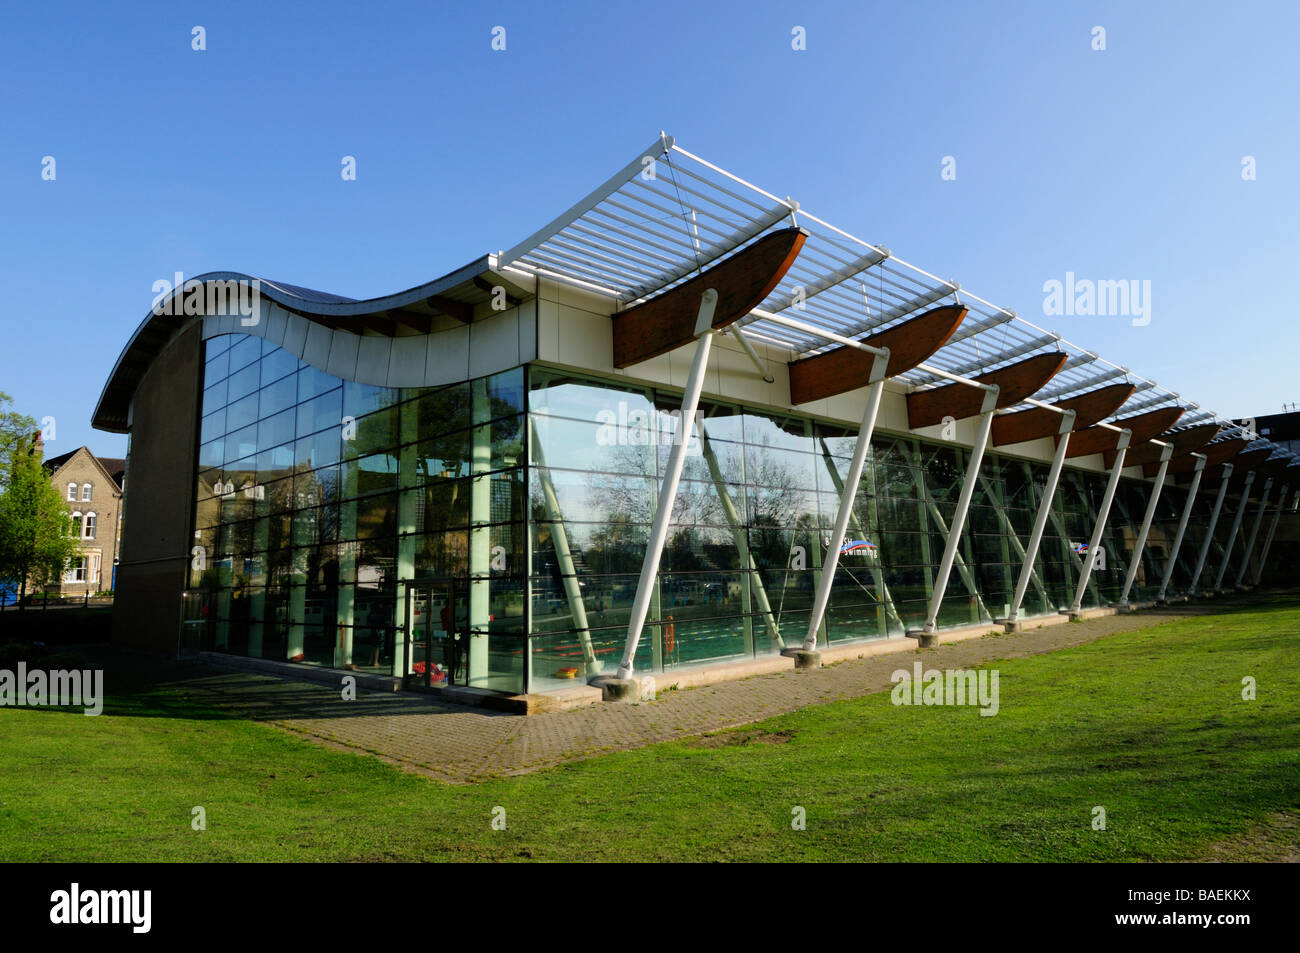 Parkside pools swimming pool cambridge england uk stock photo 23679710 alamy Swimming pools in cambridge uk